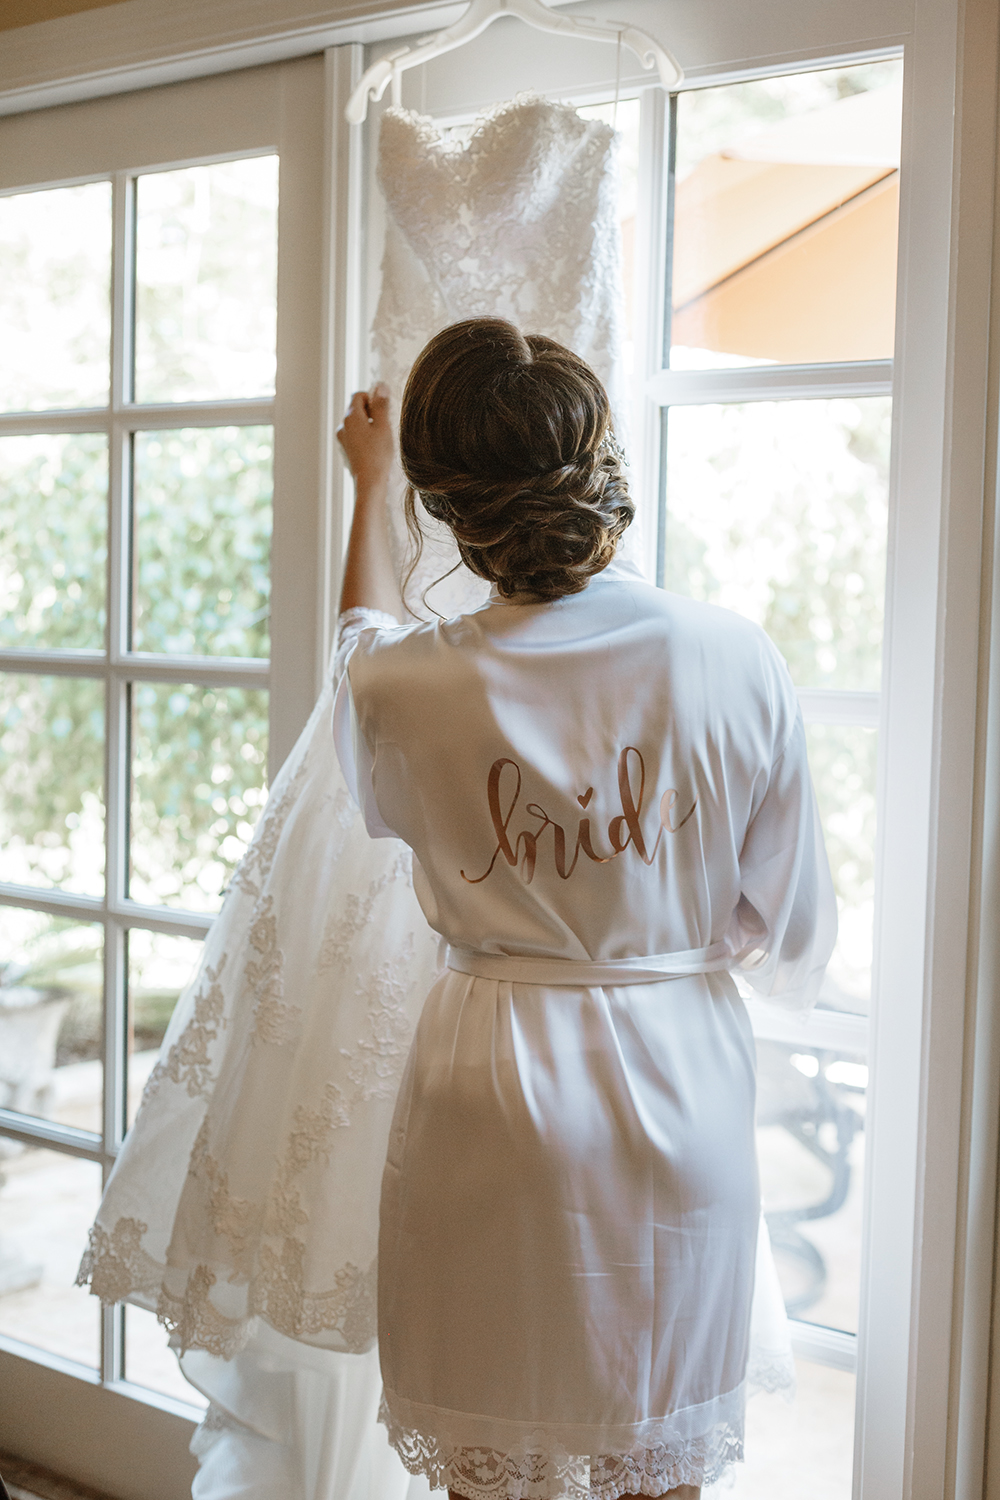 Bride looking at her wedding dress hanging by the door.